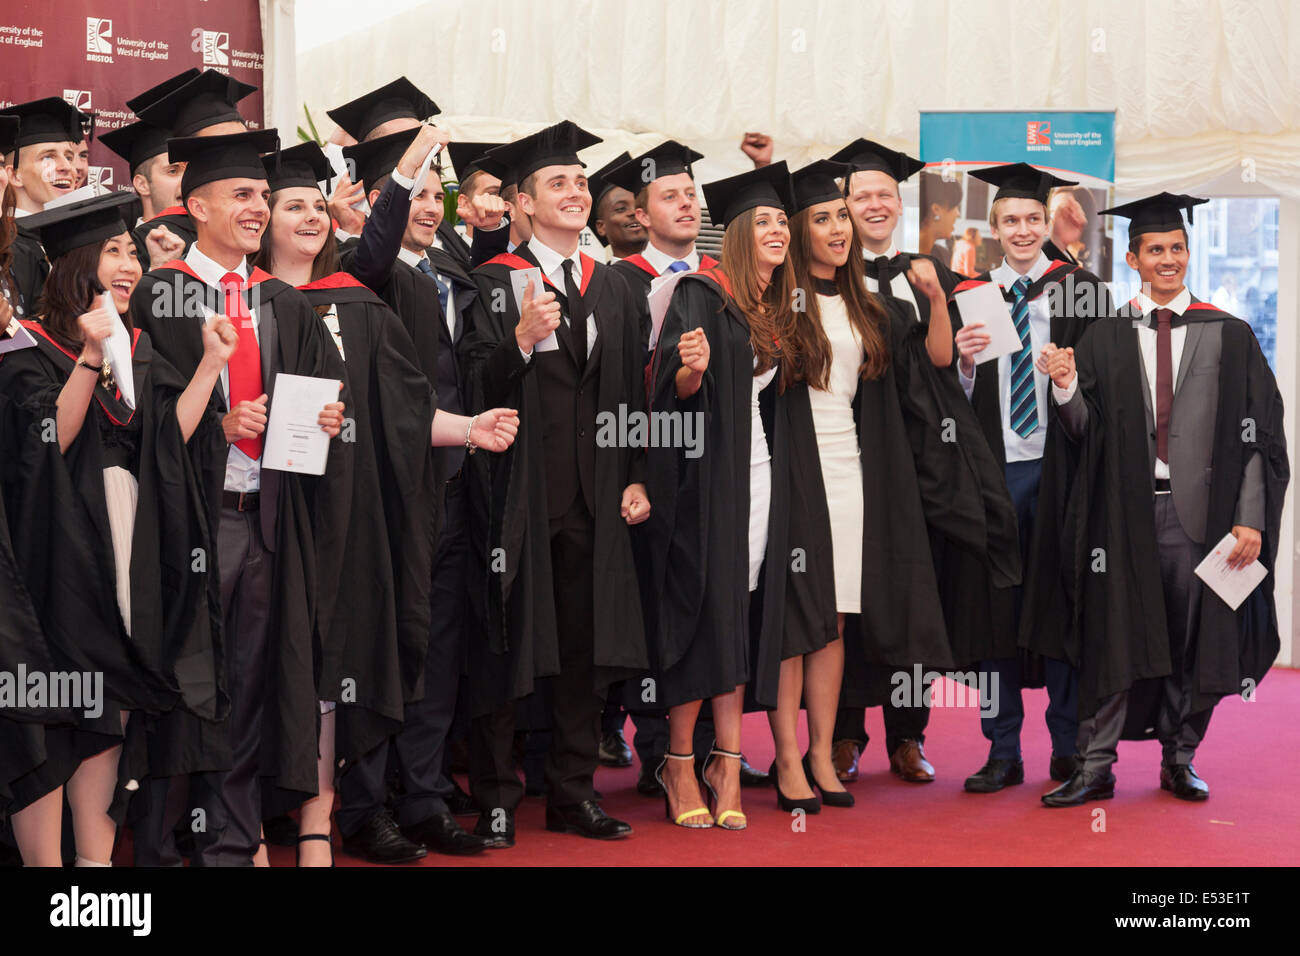 Graduation uni bristol what to wear forecasting to wear in winter in 2019